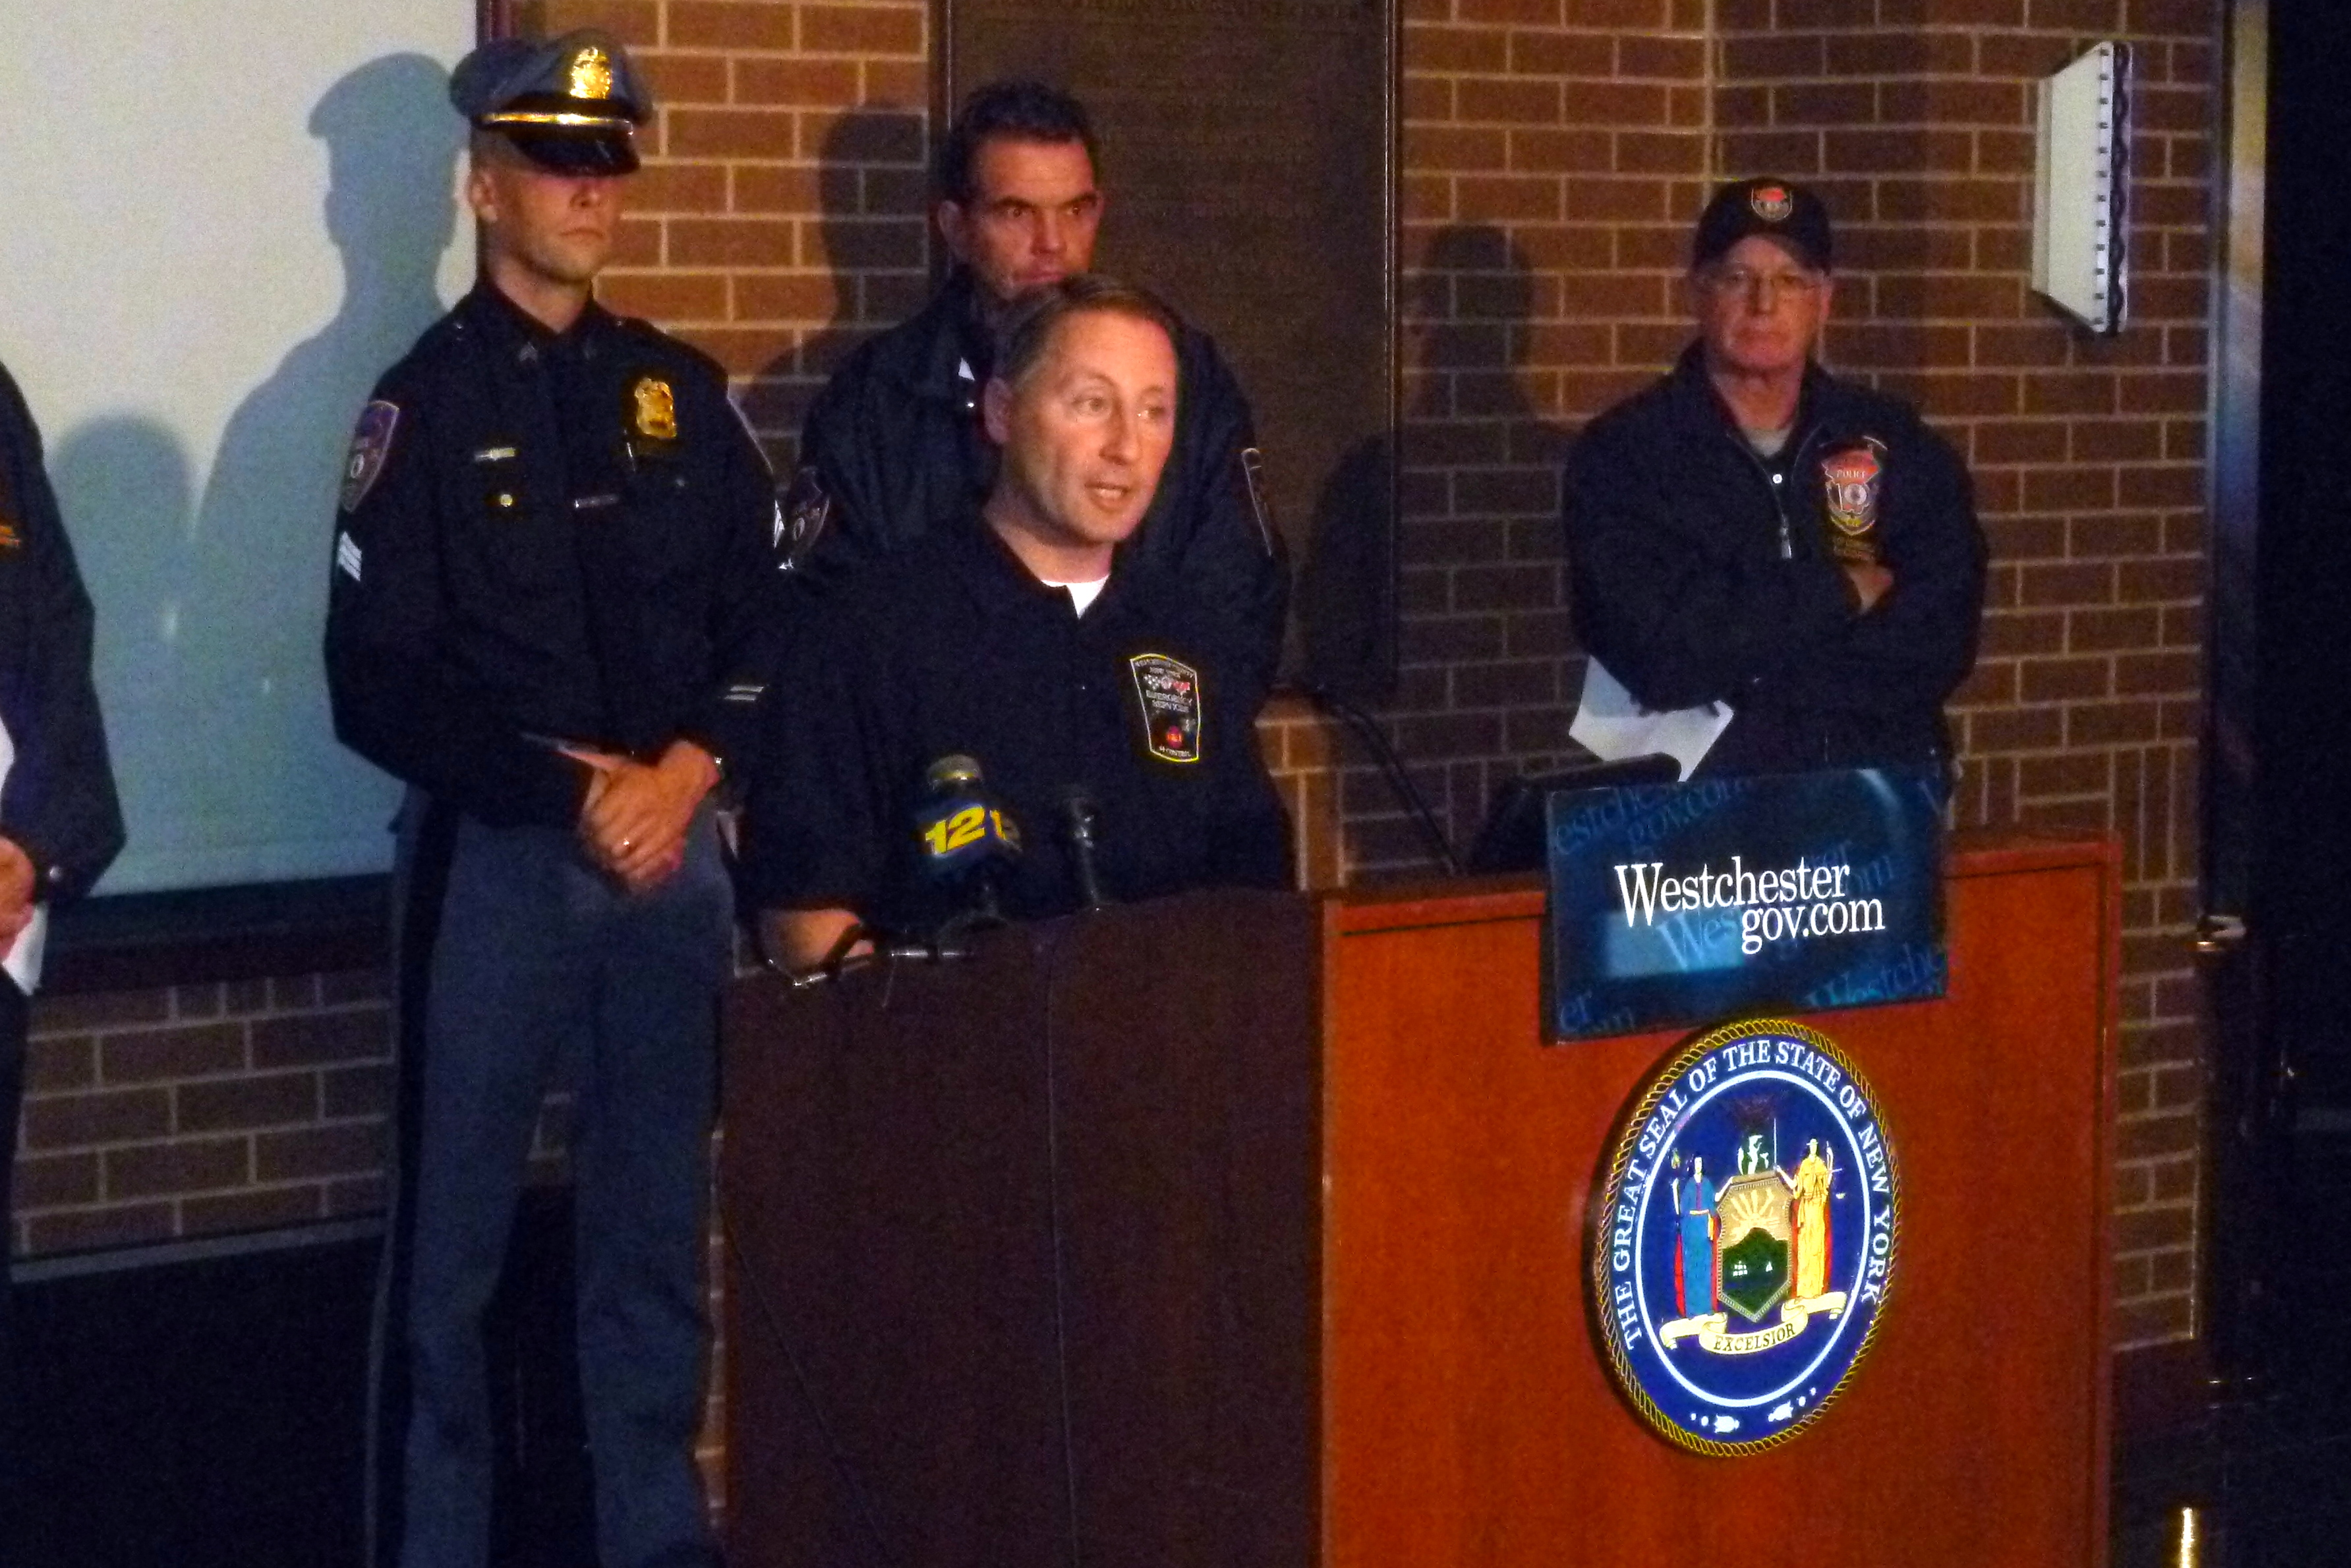 Westchester County Executive Rob Astorino urged county residents to use common sense and stay indoors as much as possible during Hurricane Sandy.